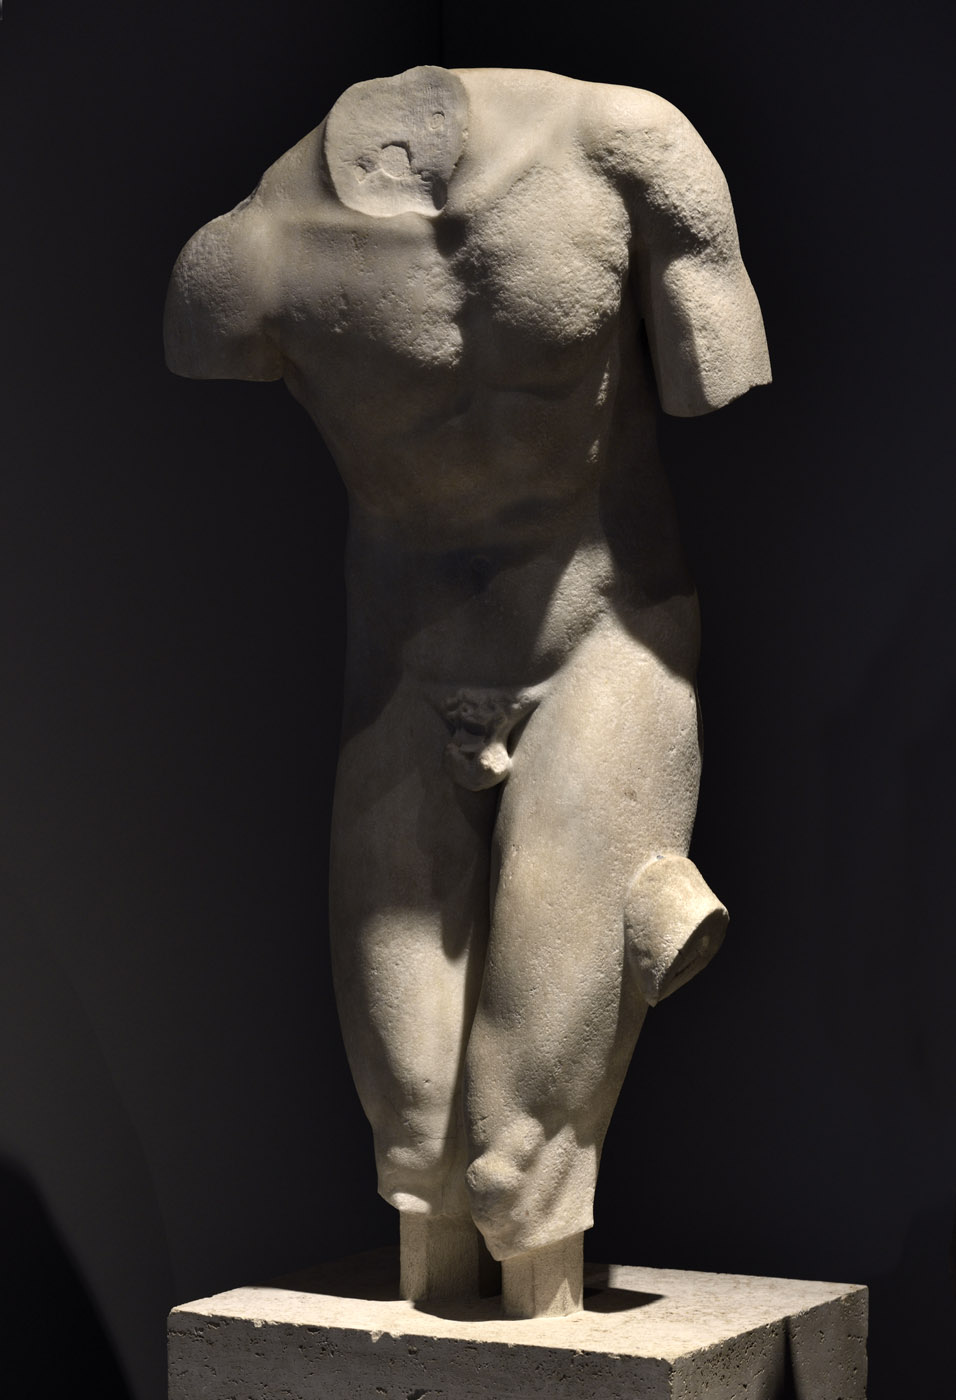 """Torso of an athlet (so-called """"Torso Valentini""""). Marble. A roman copy of ca. 100 CE after a Greek bronze model od mid-5th cent. BCE. Rome, Roman National Museum, Palazzo Massimo alle Terme"""